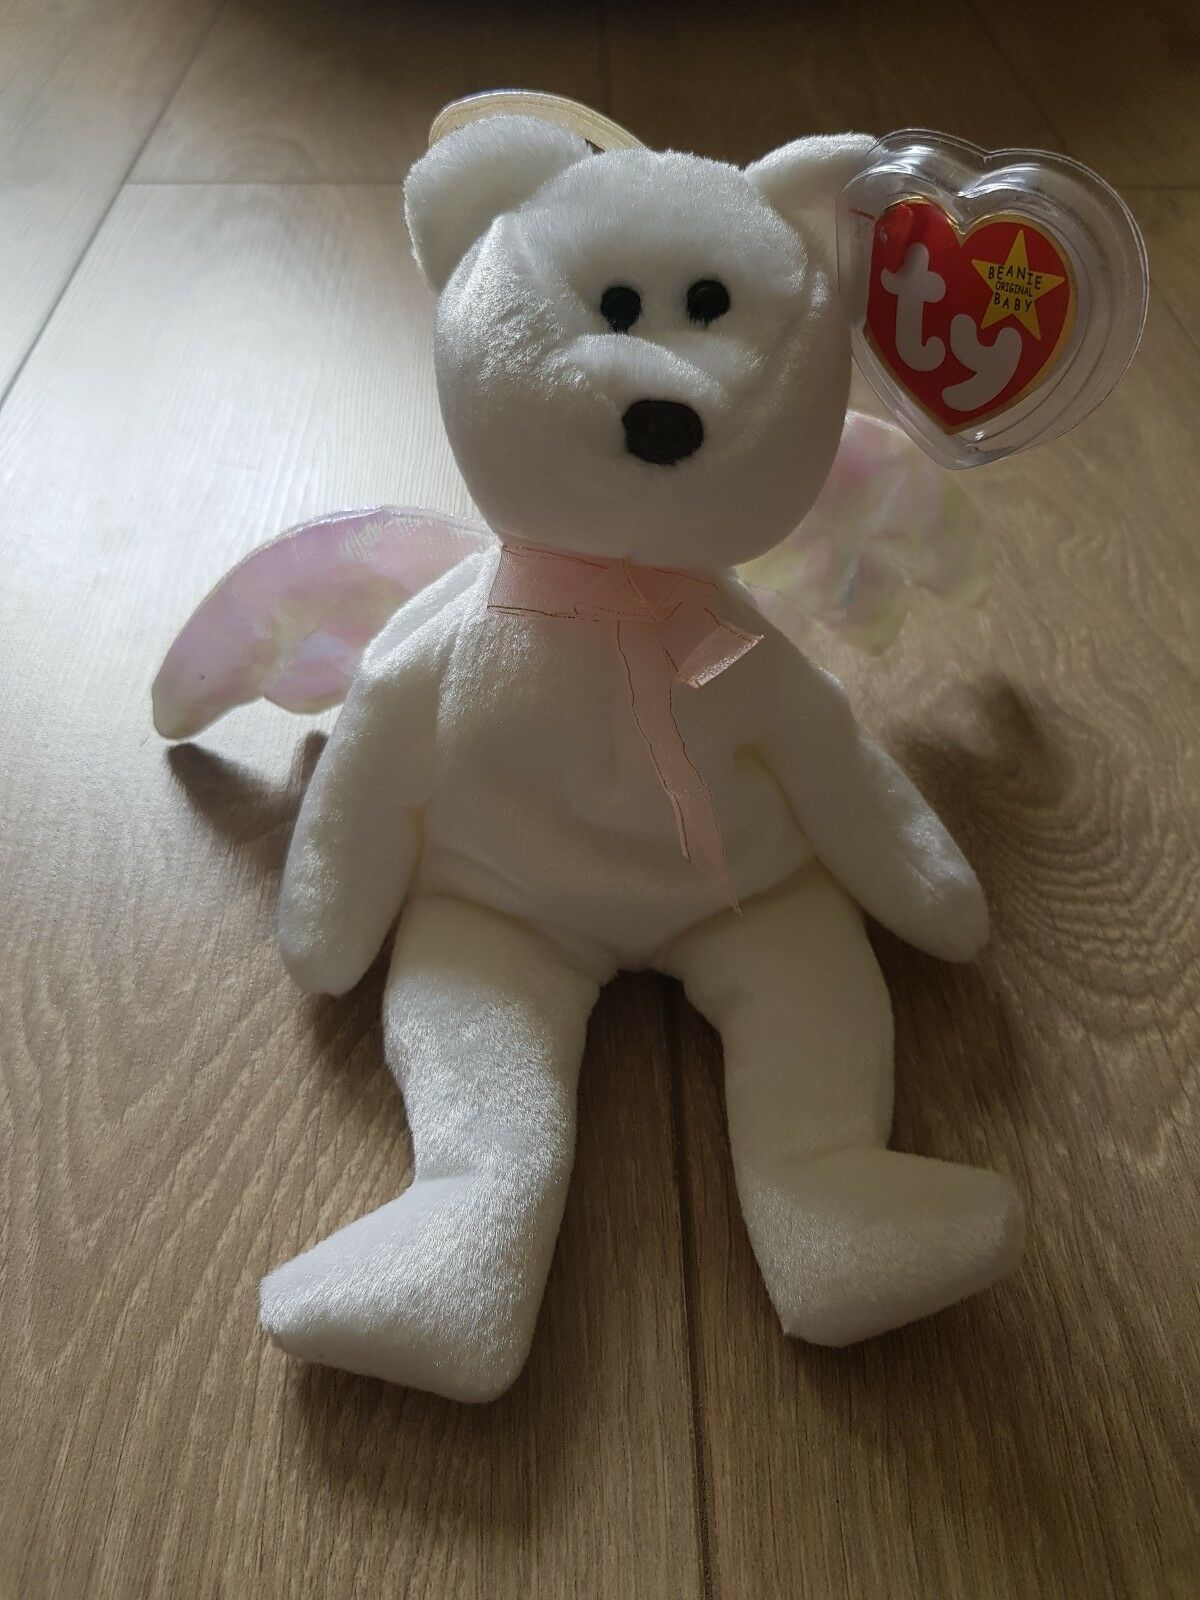 TY  ORIGINAL  beanie baby 'HALO' bear RARE  pearly wings  red stamp  in tush